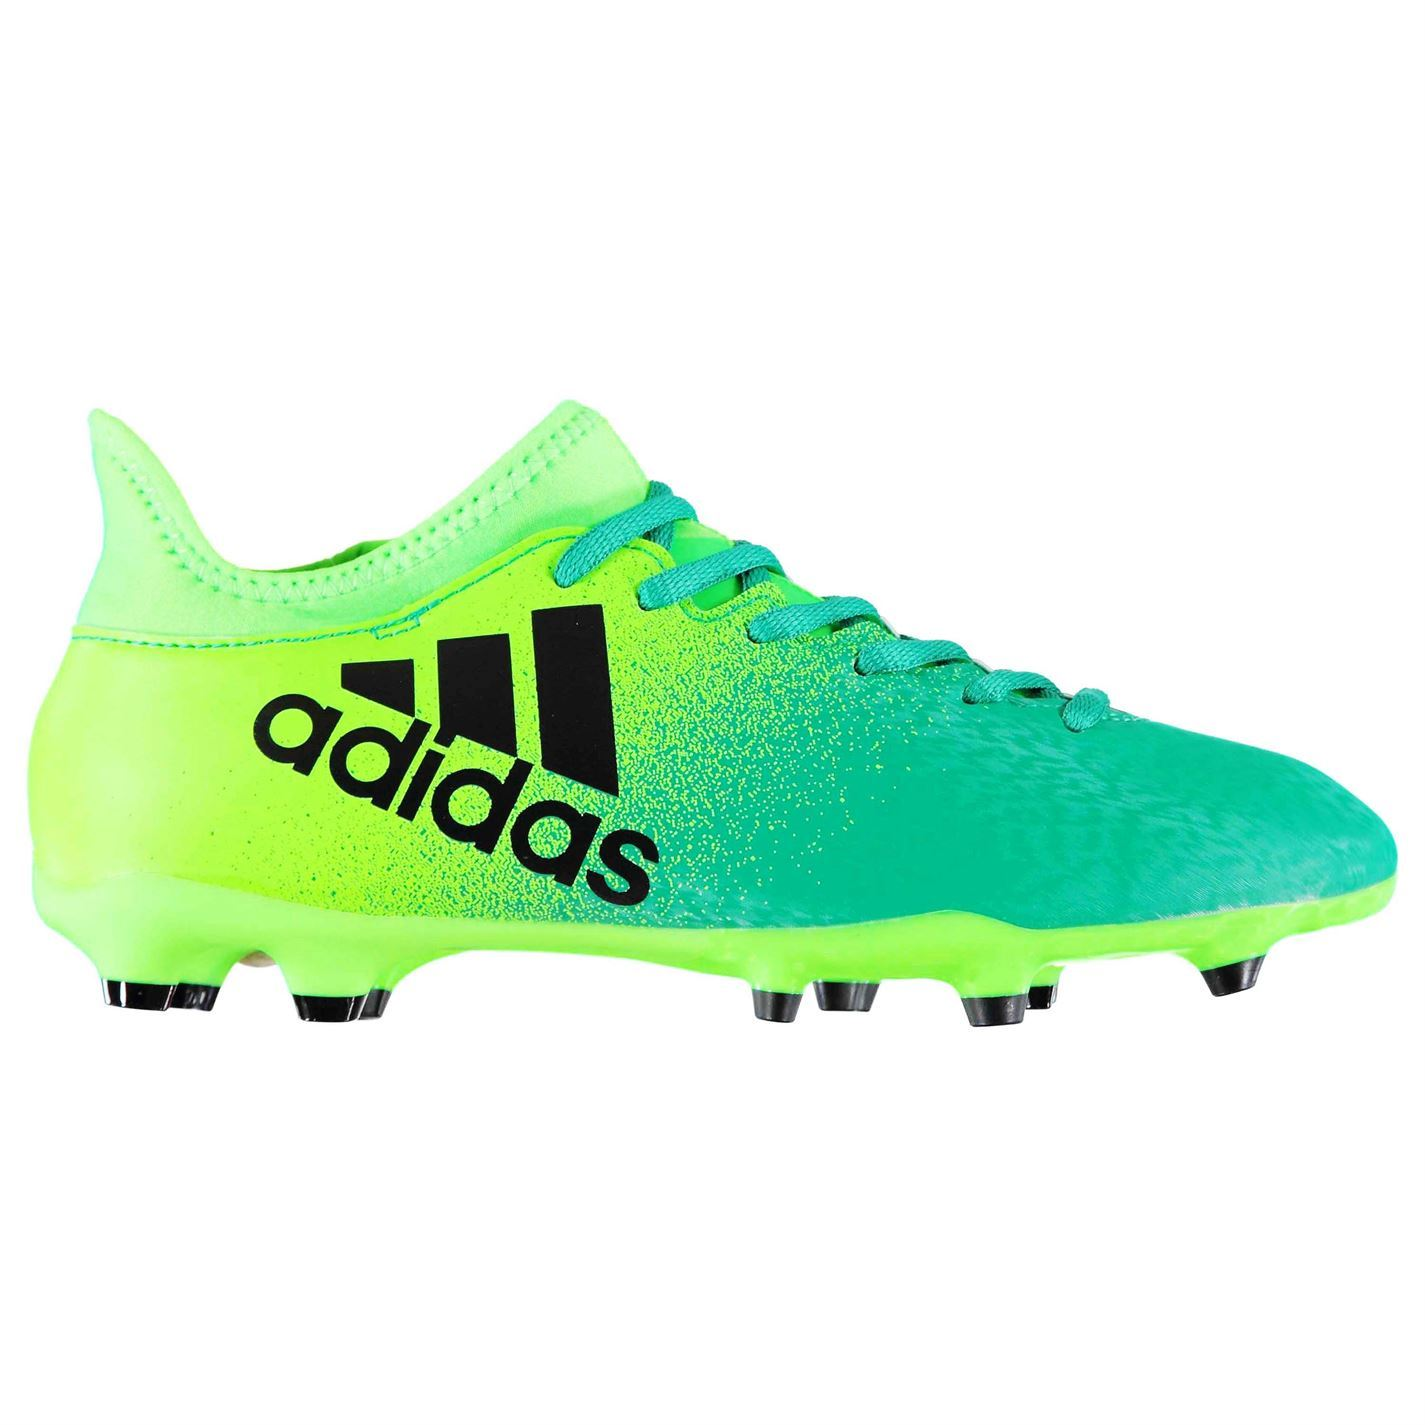 38af7ce0fa01 ... adidas X 16.3 FG Firm Ground Football Boots Mens Green Black Soccer  Cleats Shoes ...